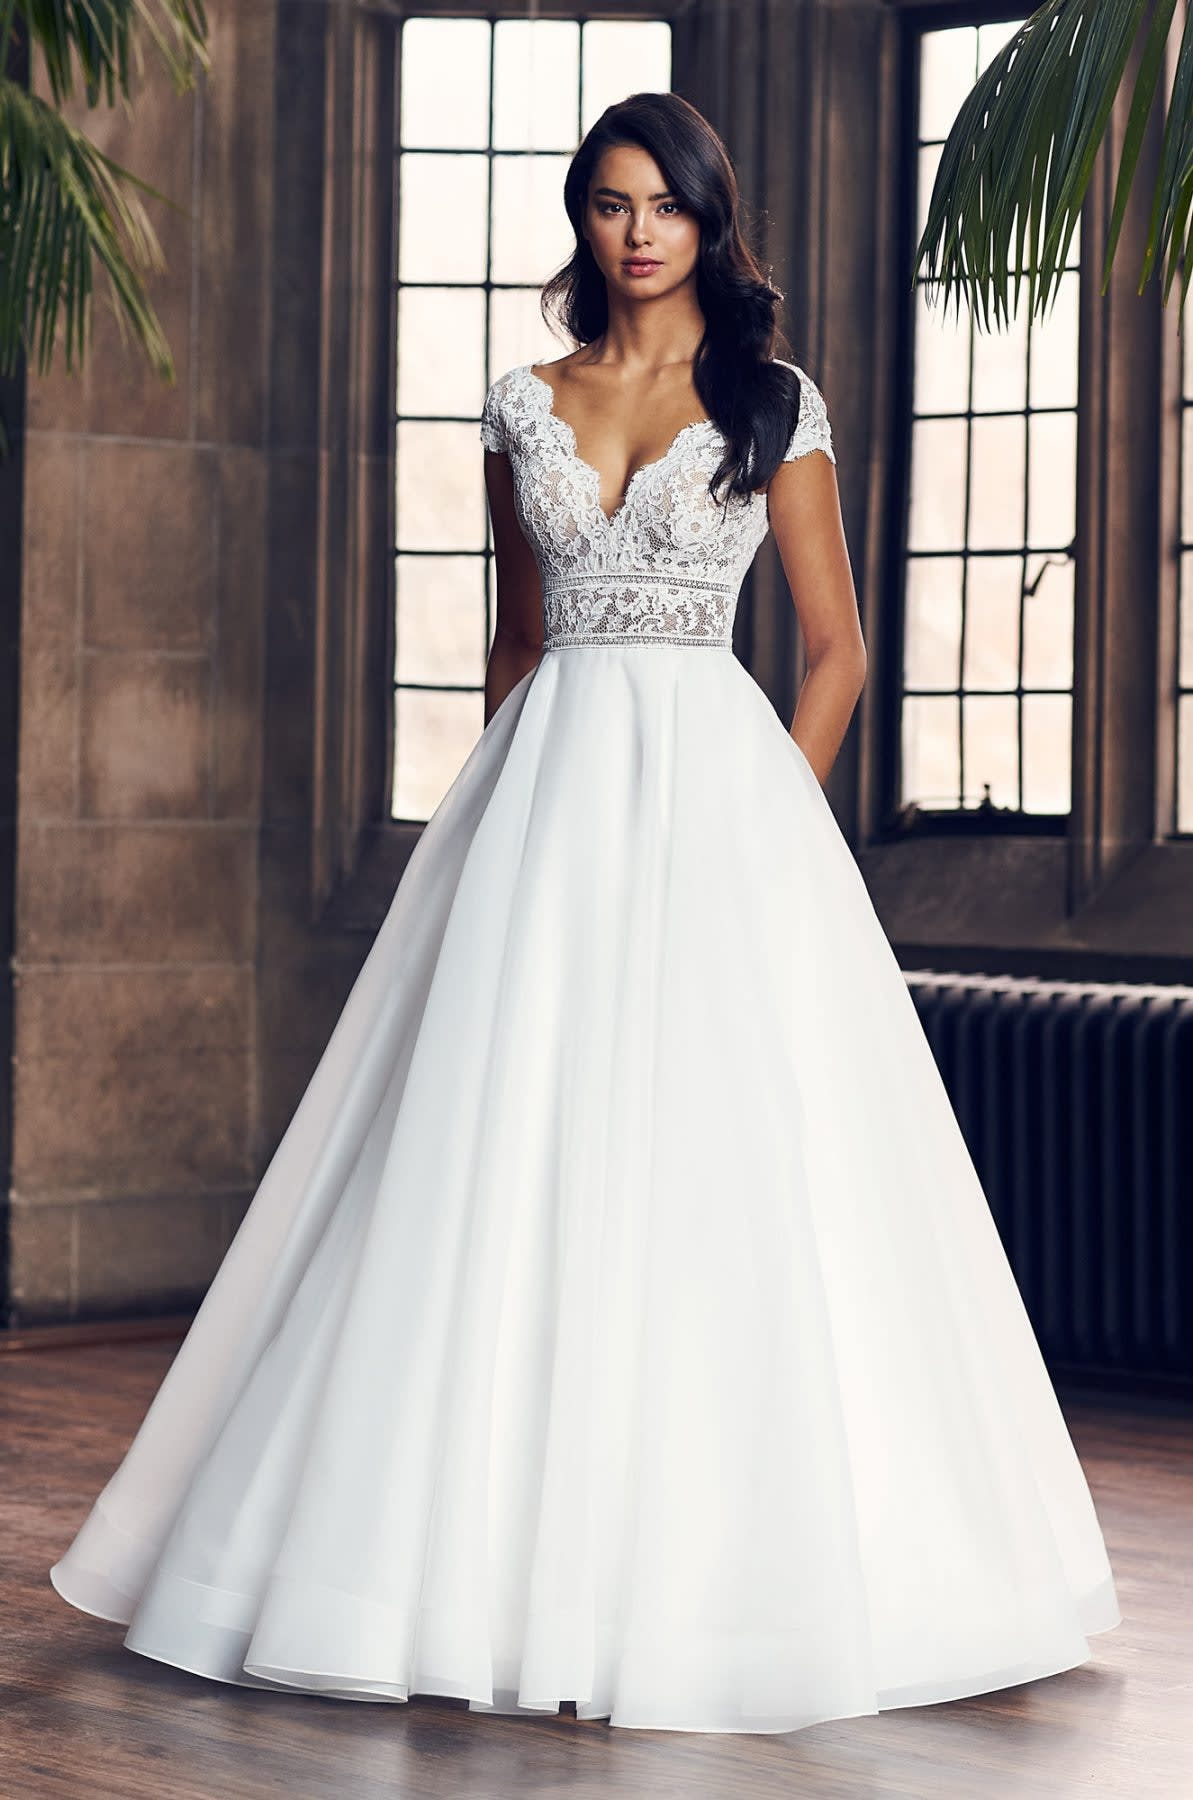 A cap sleeve ball gown with a lacy top and a flowing skirt